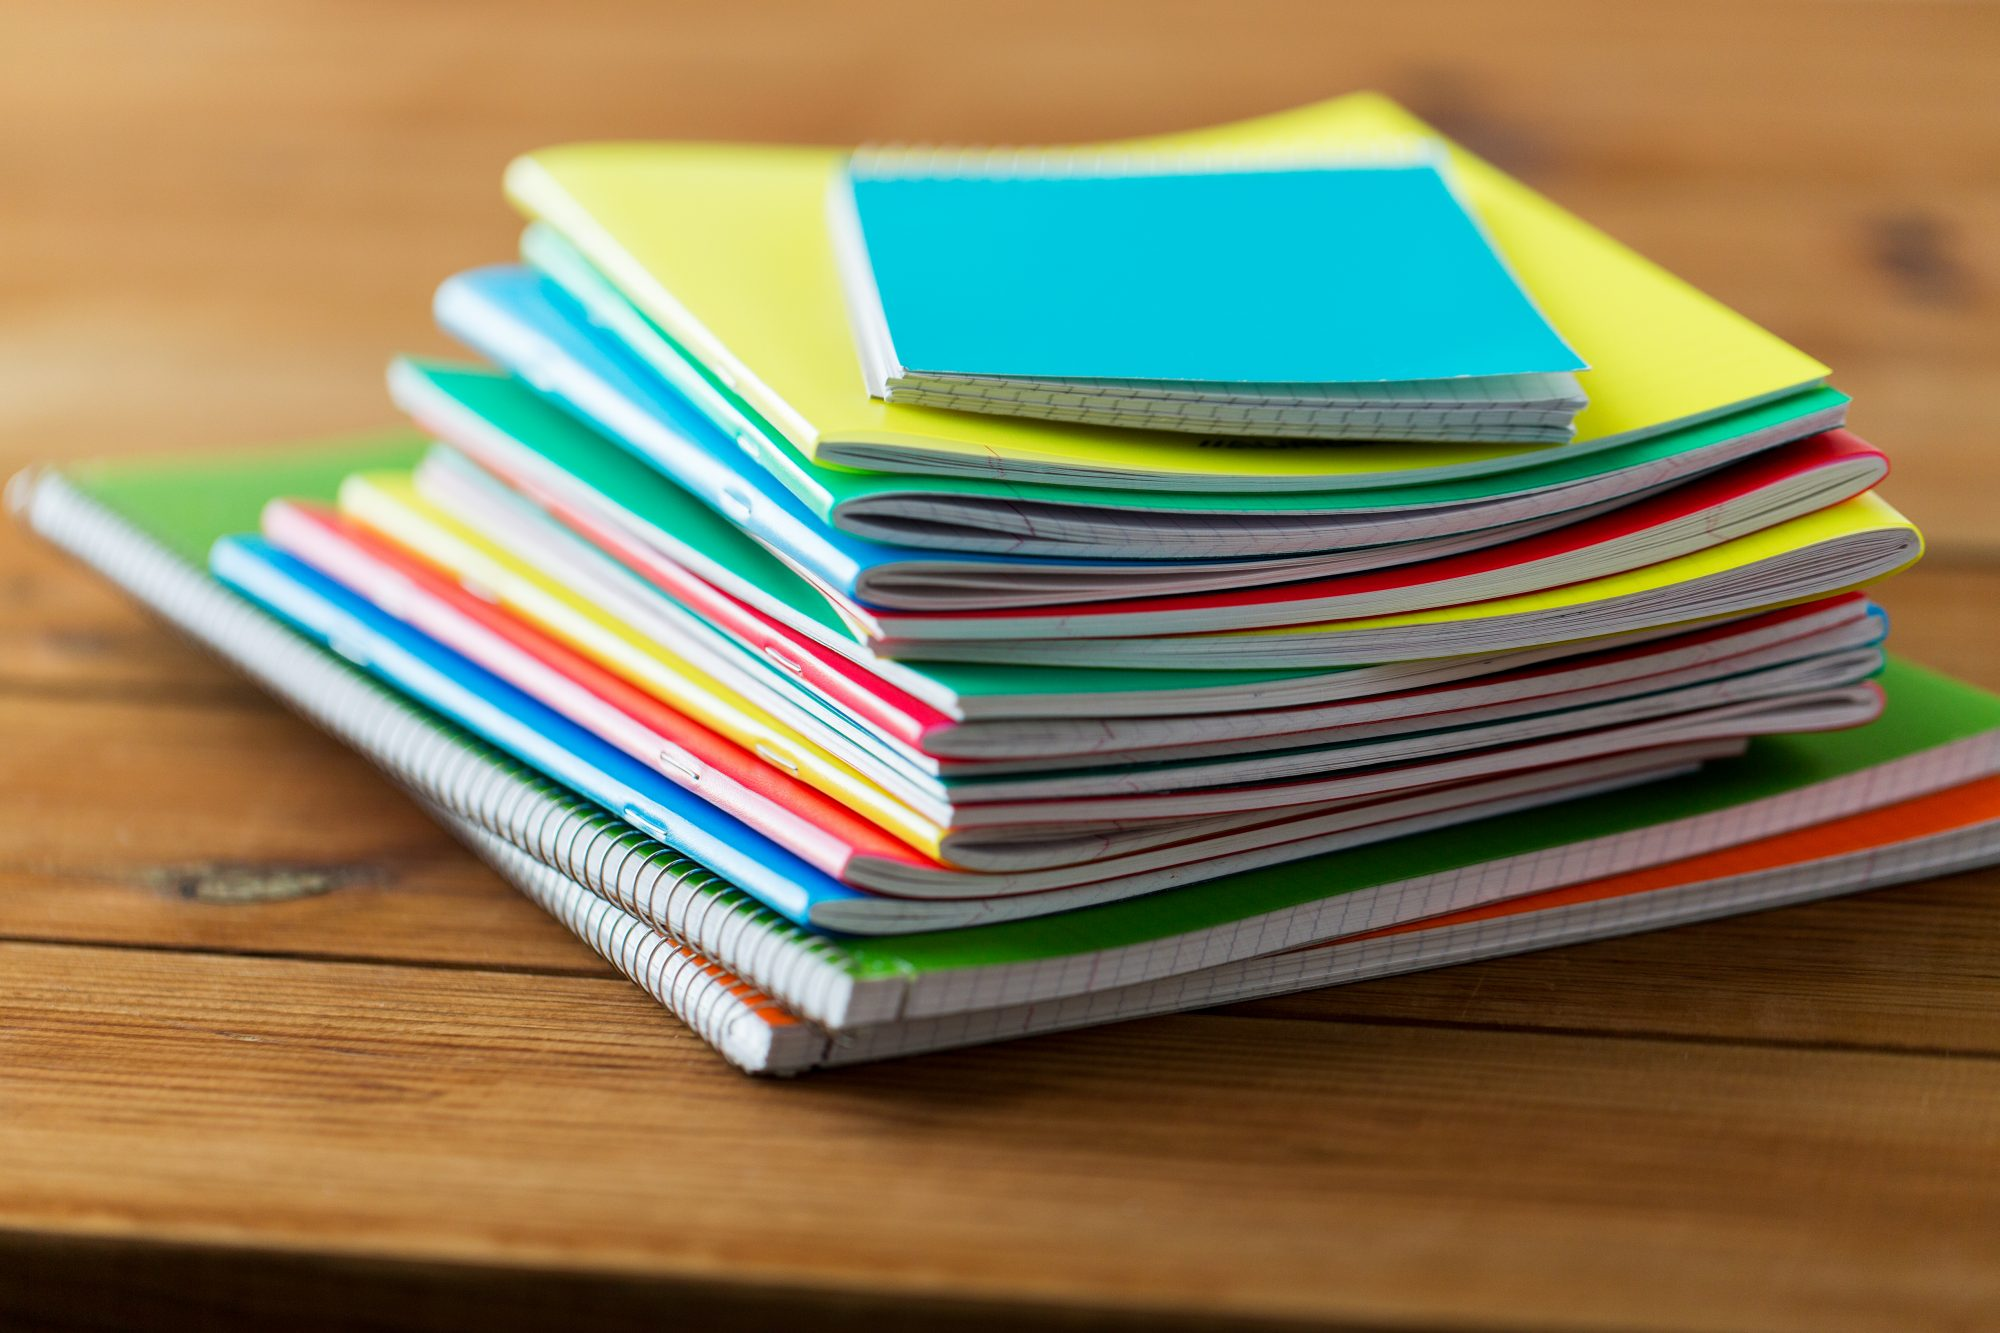 Notebooks in a Stack